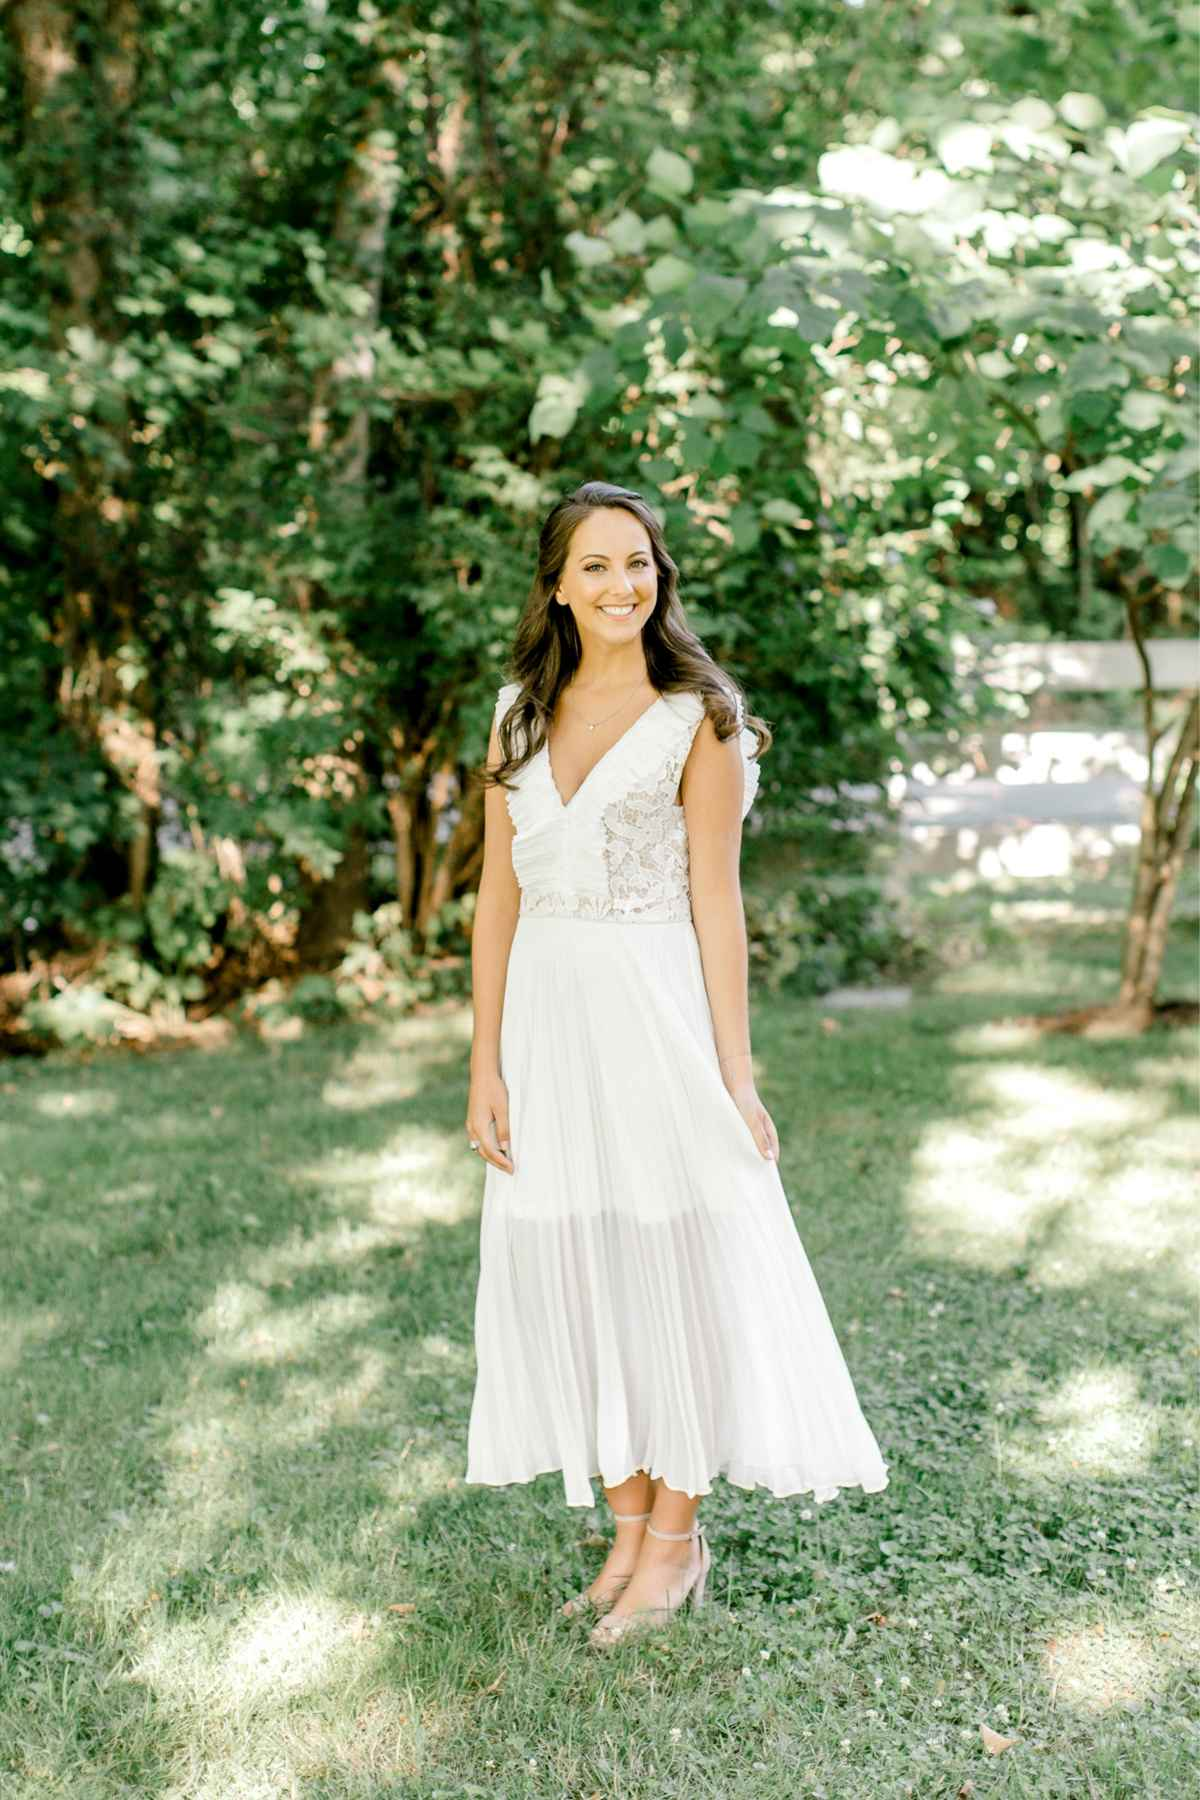 Haley | The Perfect Engagement Photo dress